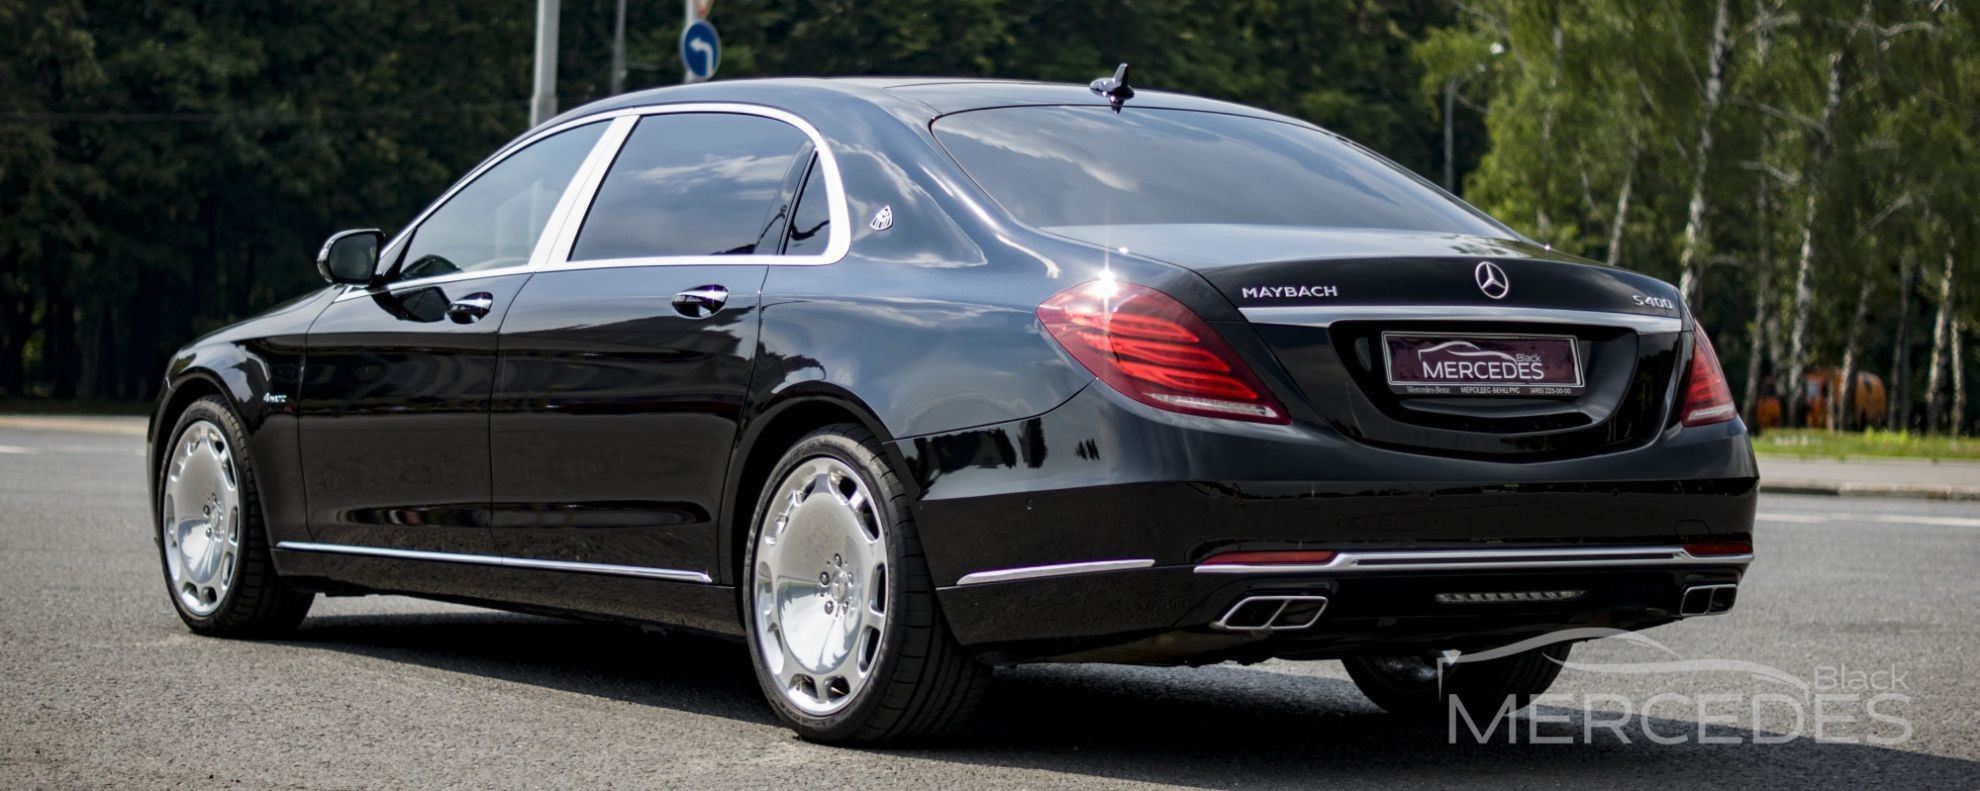 Mercedes Maybach-3